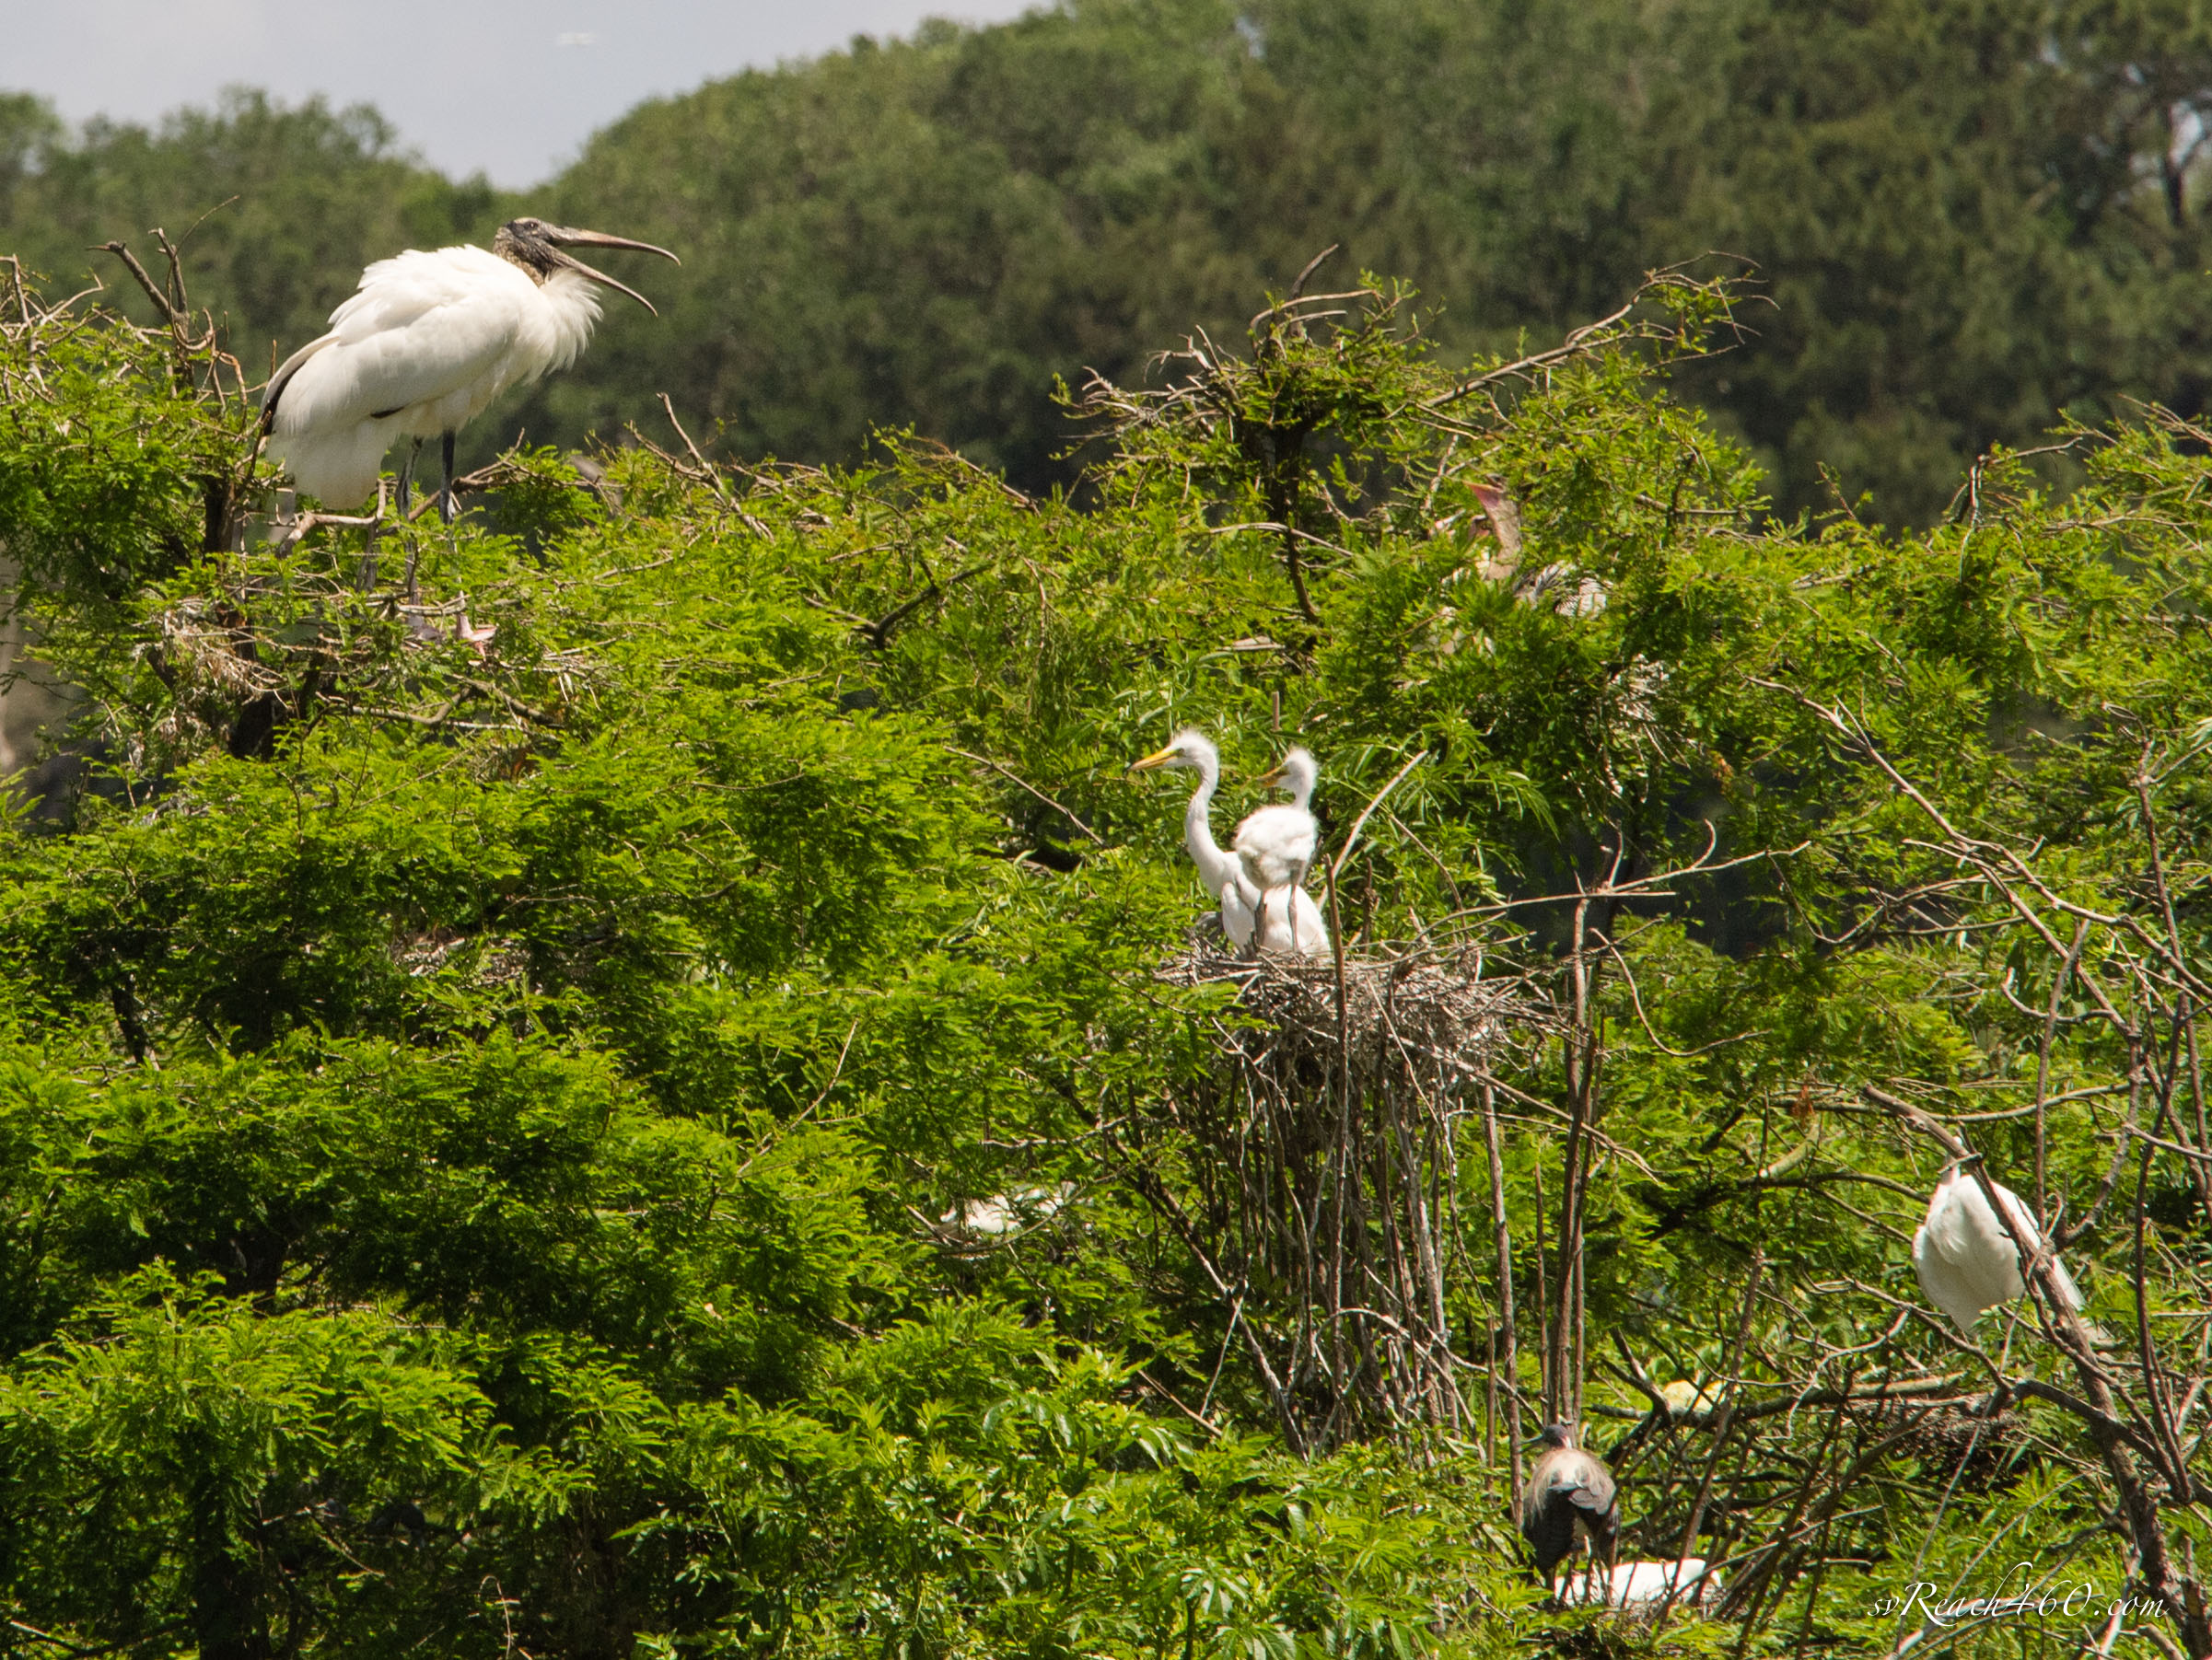 Wood stork & baby great egrets in nest